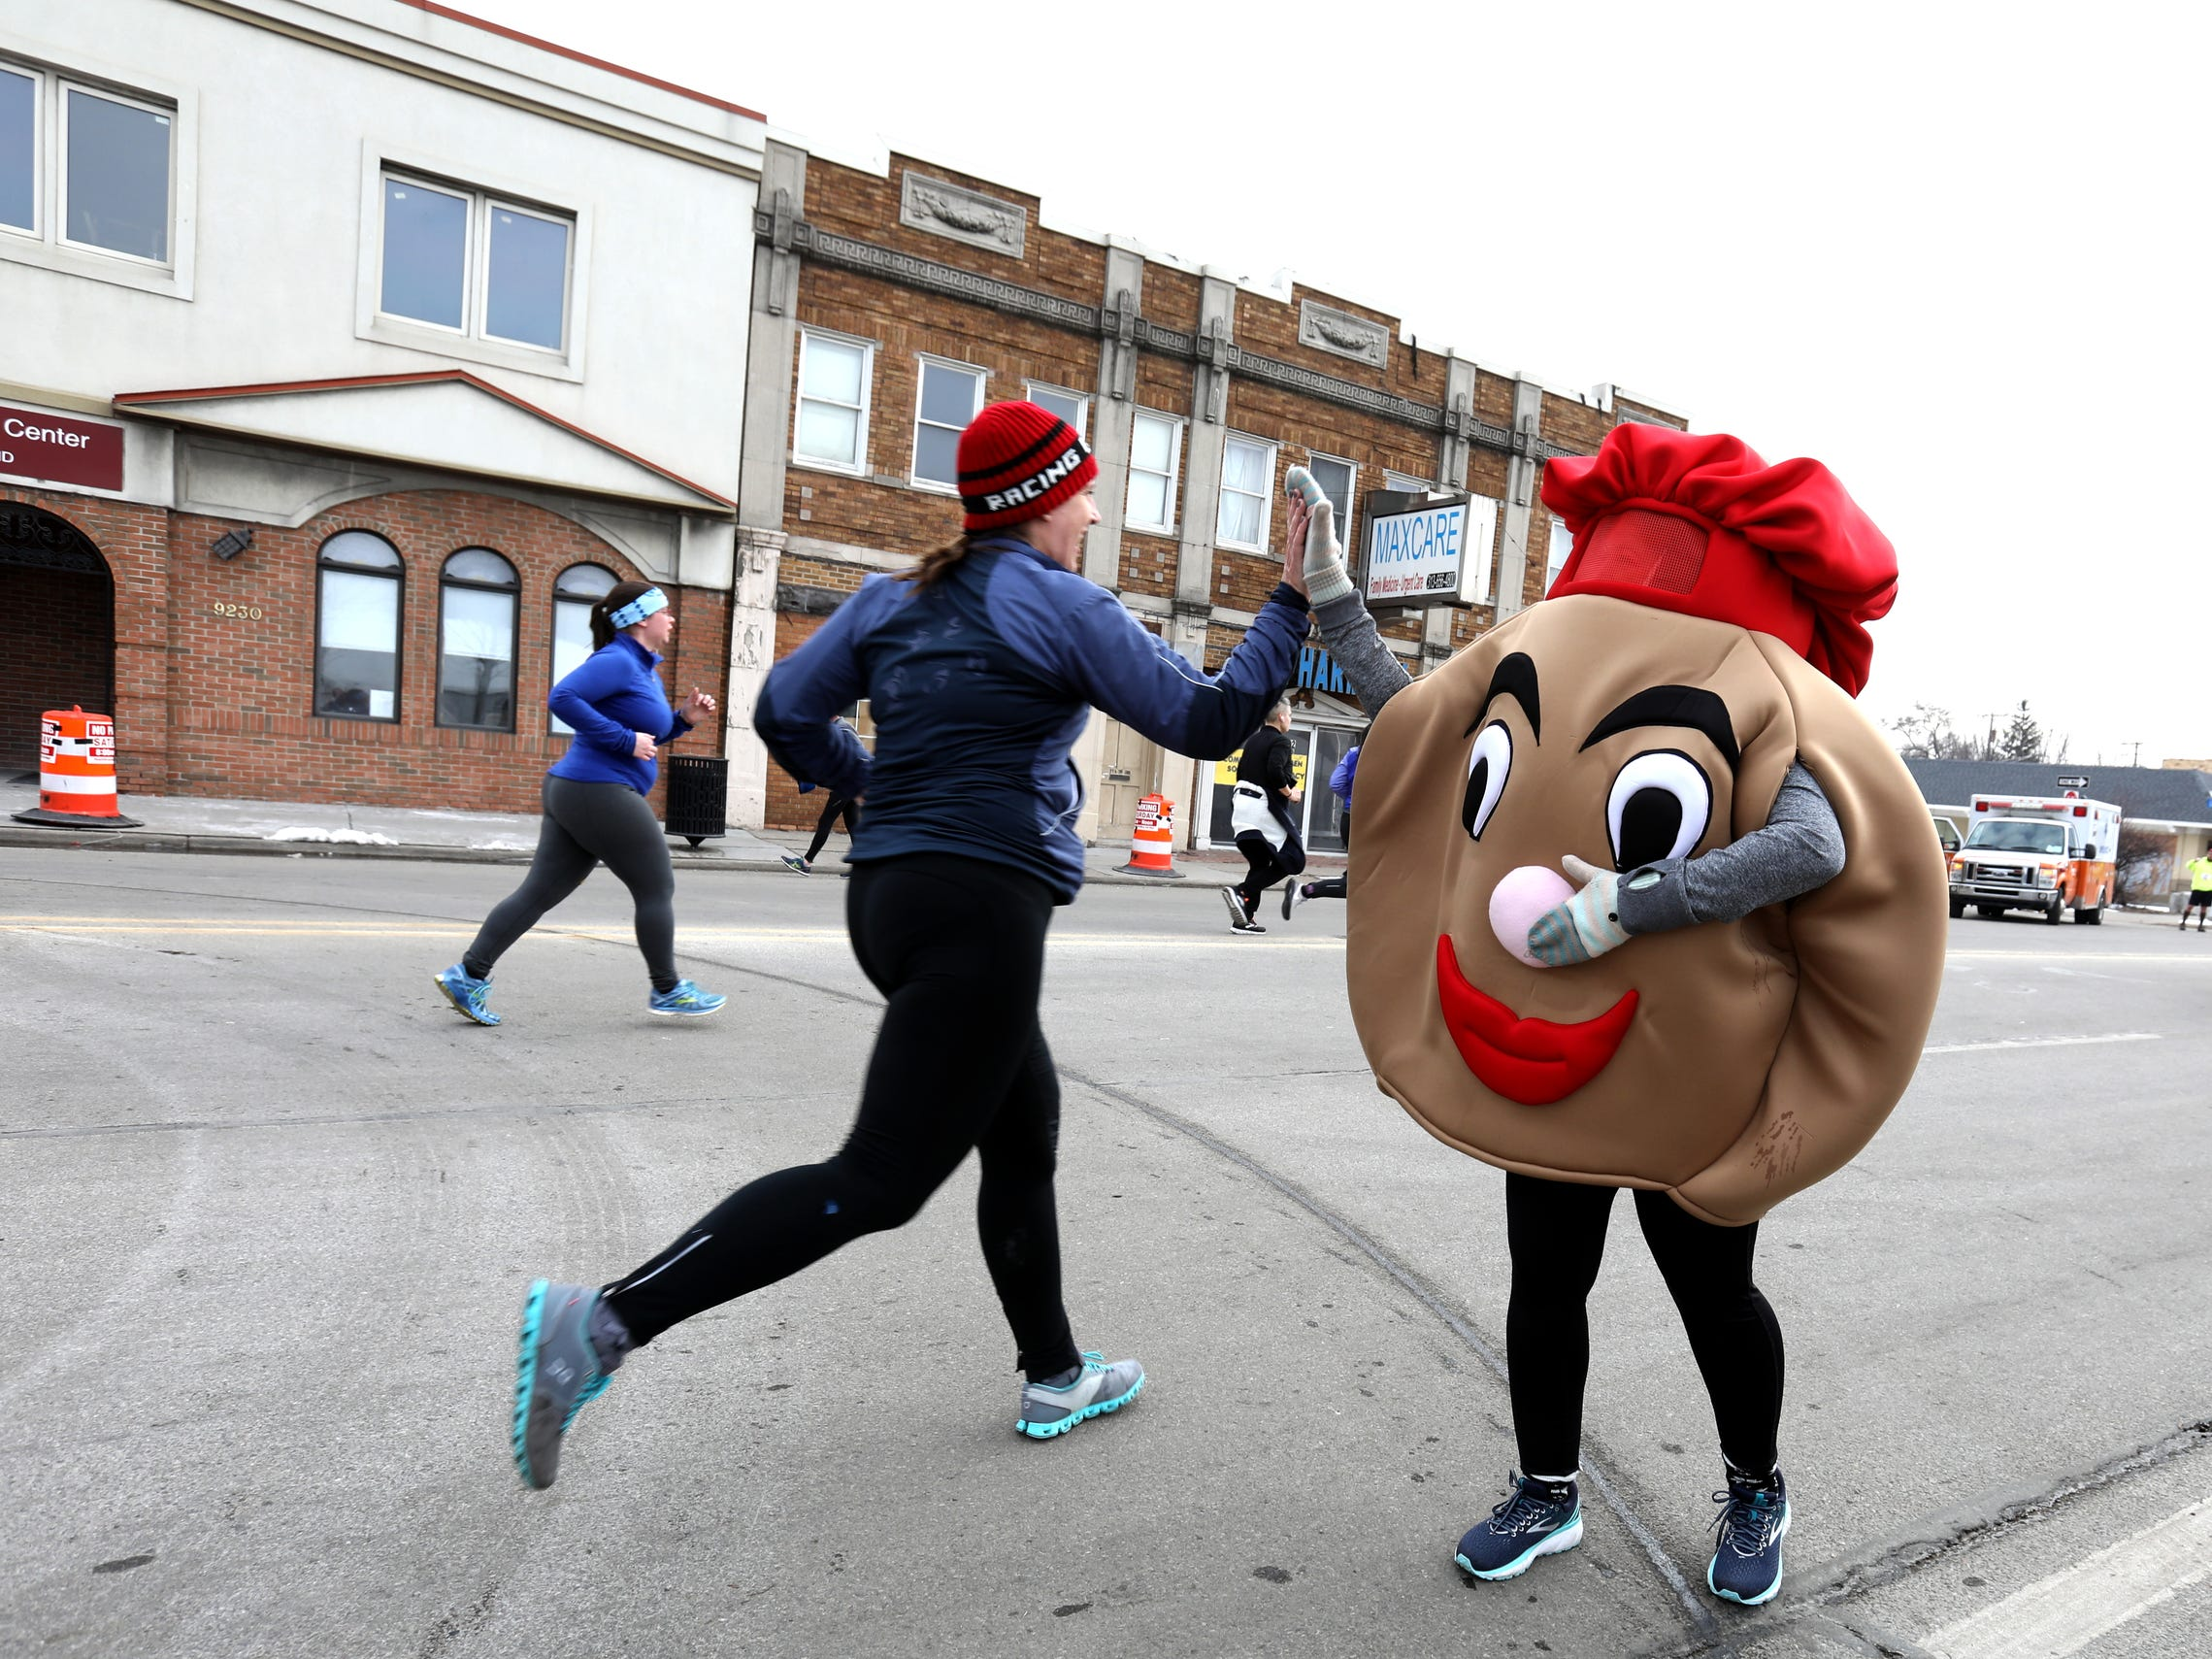 The 2019 Paczki 5K run mascot greets runners as they get close to the finish line on Joseph Campau Avenue in downtown Hamtramck on Saturday, March 2, 2019.